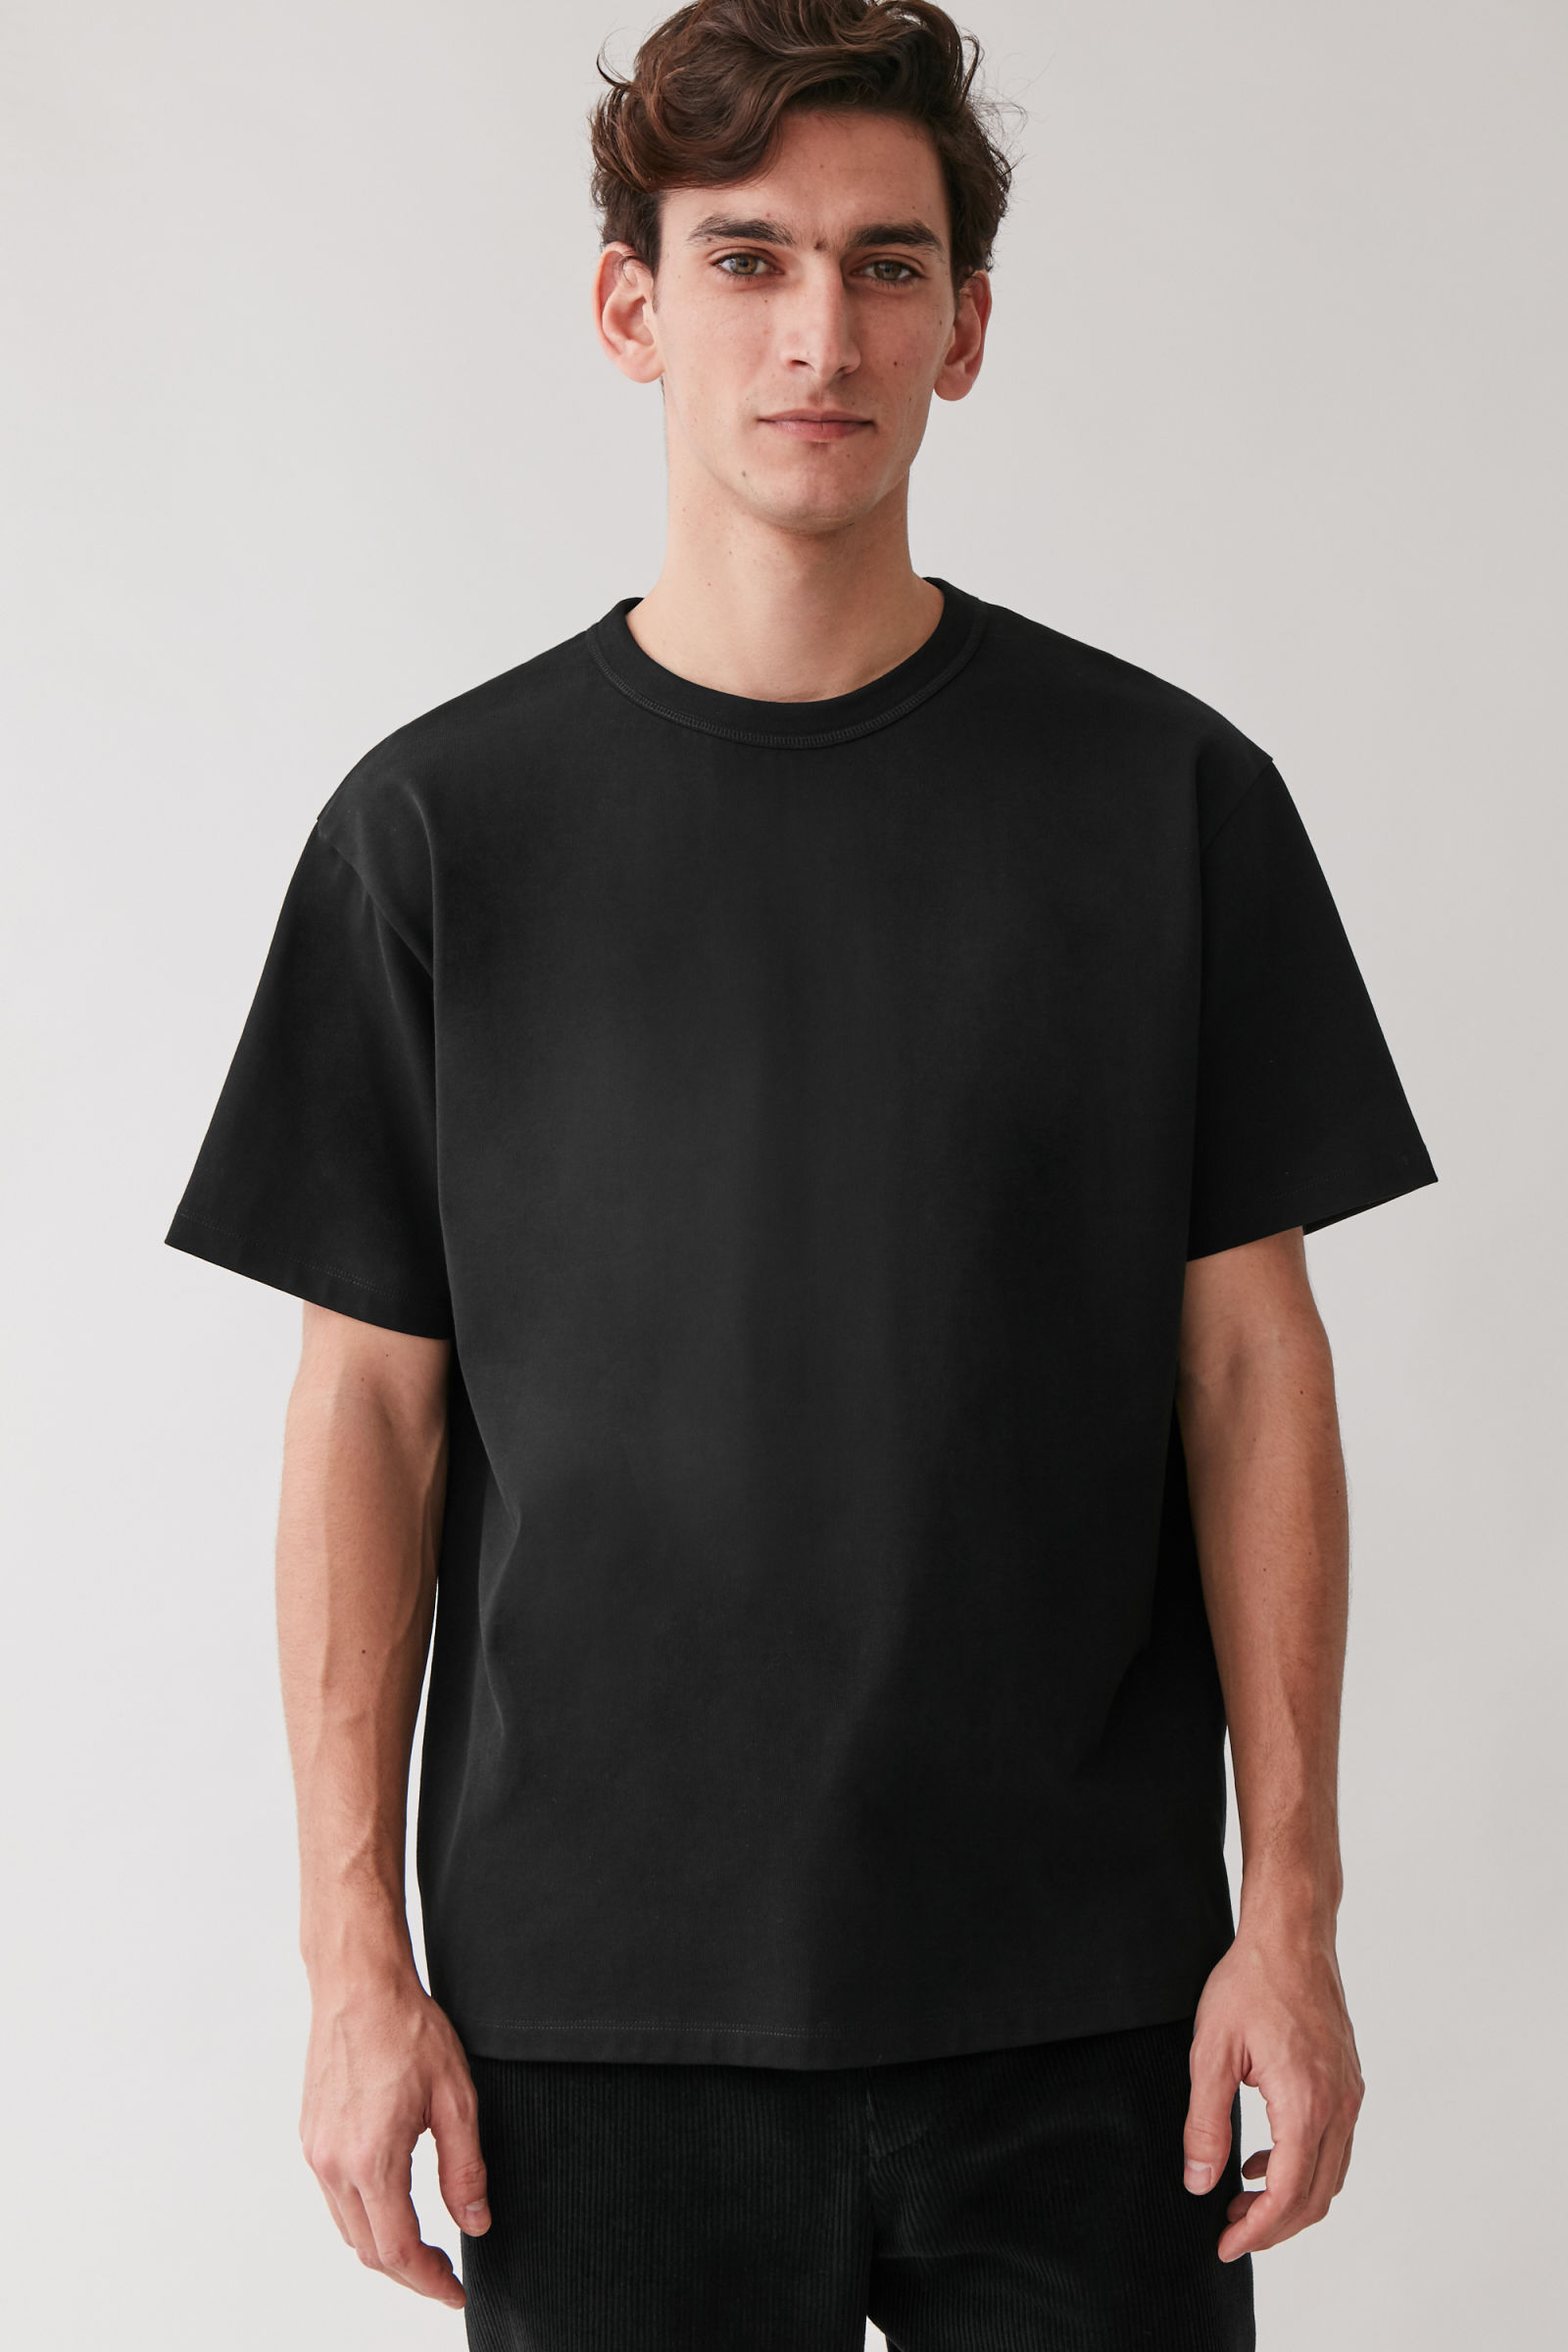 COS RELAXED-FIT T-SHIRT,Black